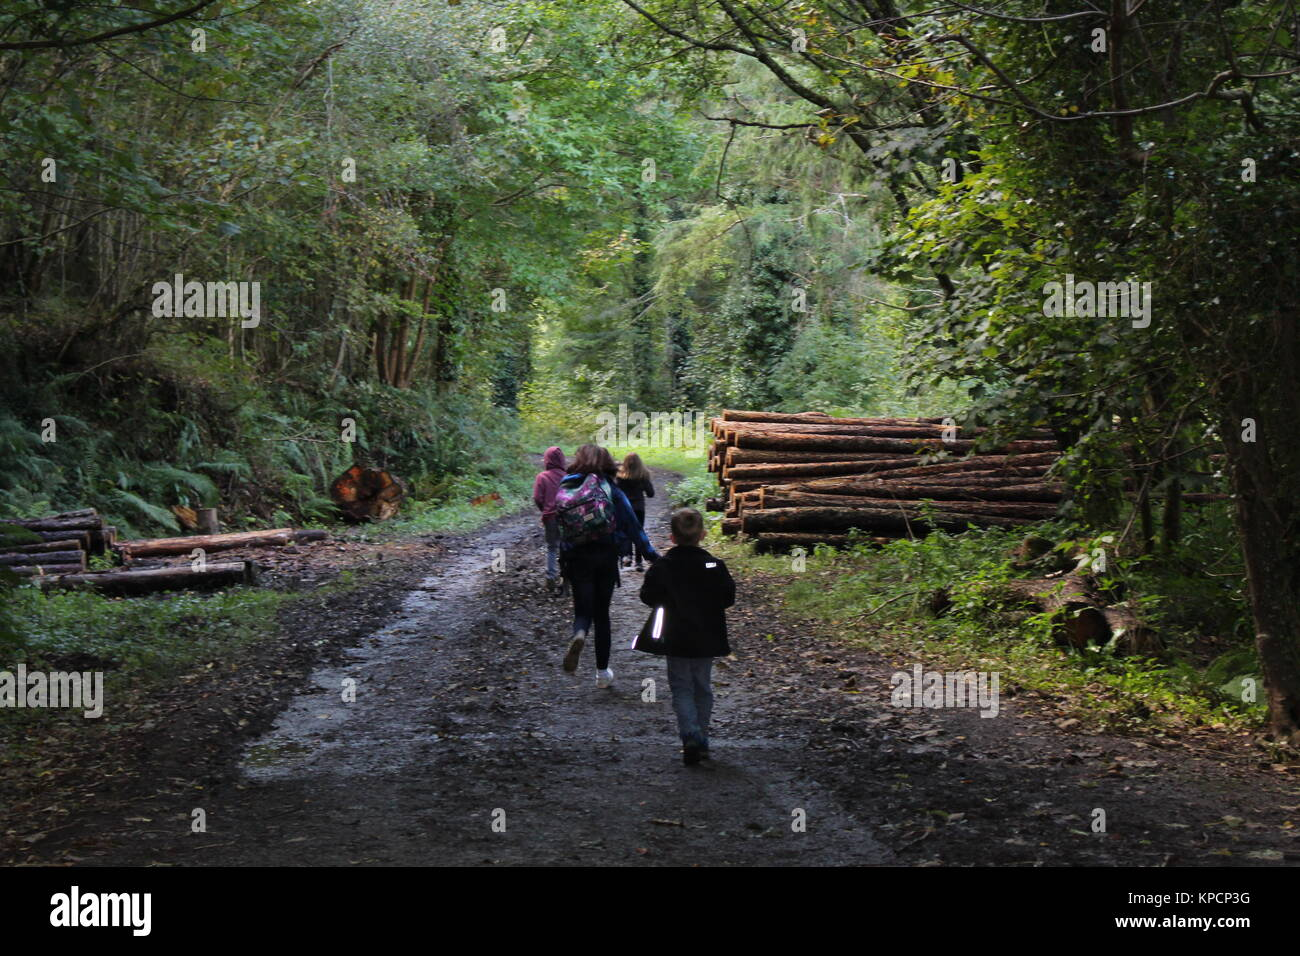 Four kids in the woods - Stock Image